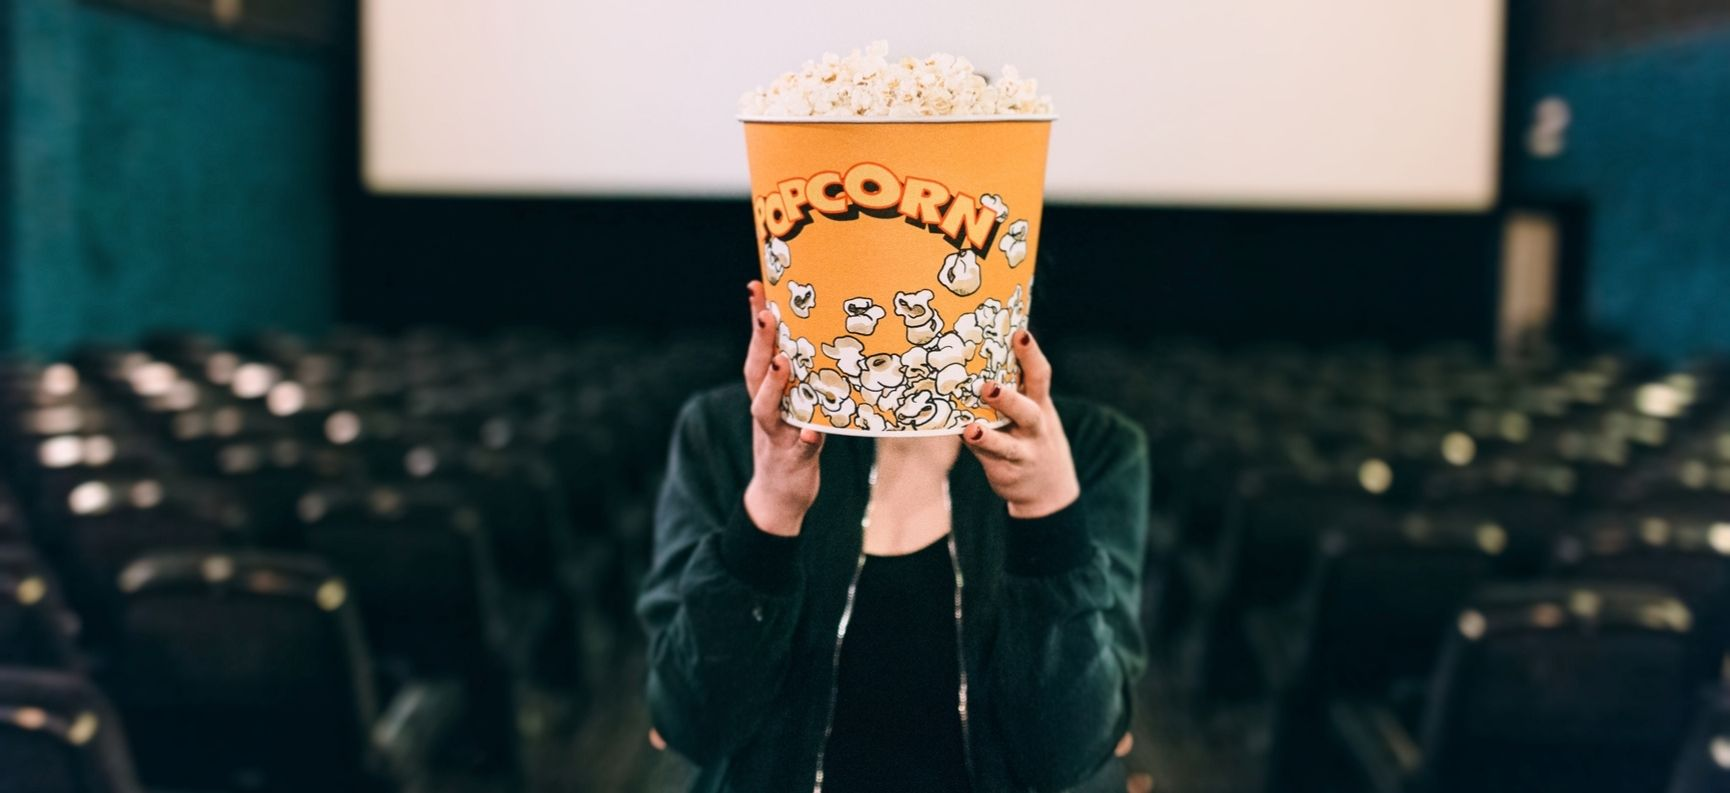 Woman holding popcorn container in front of her face in a movie theater